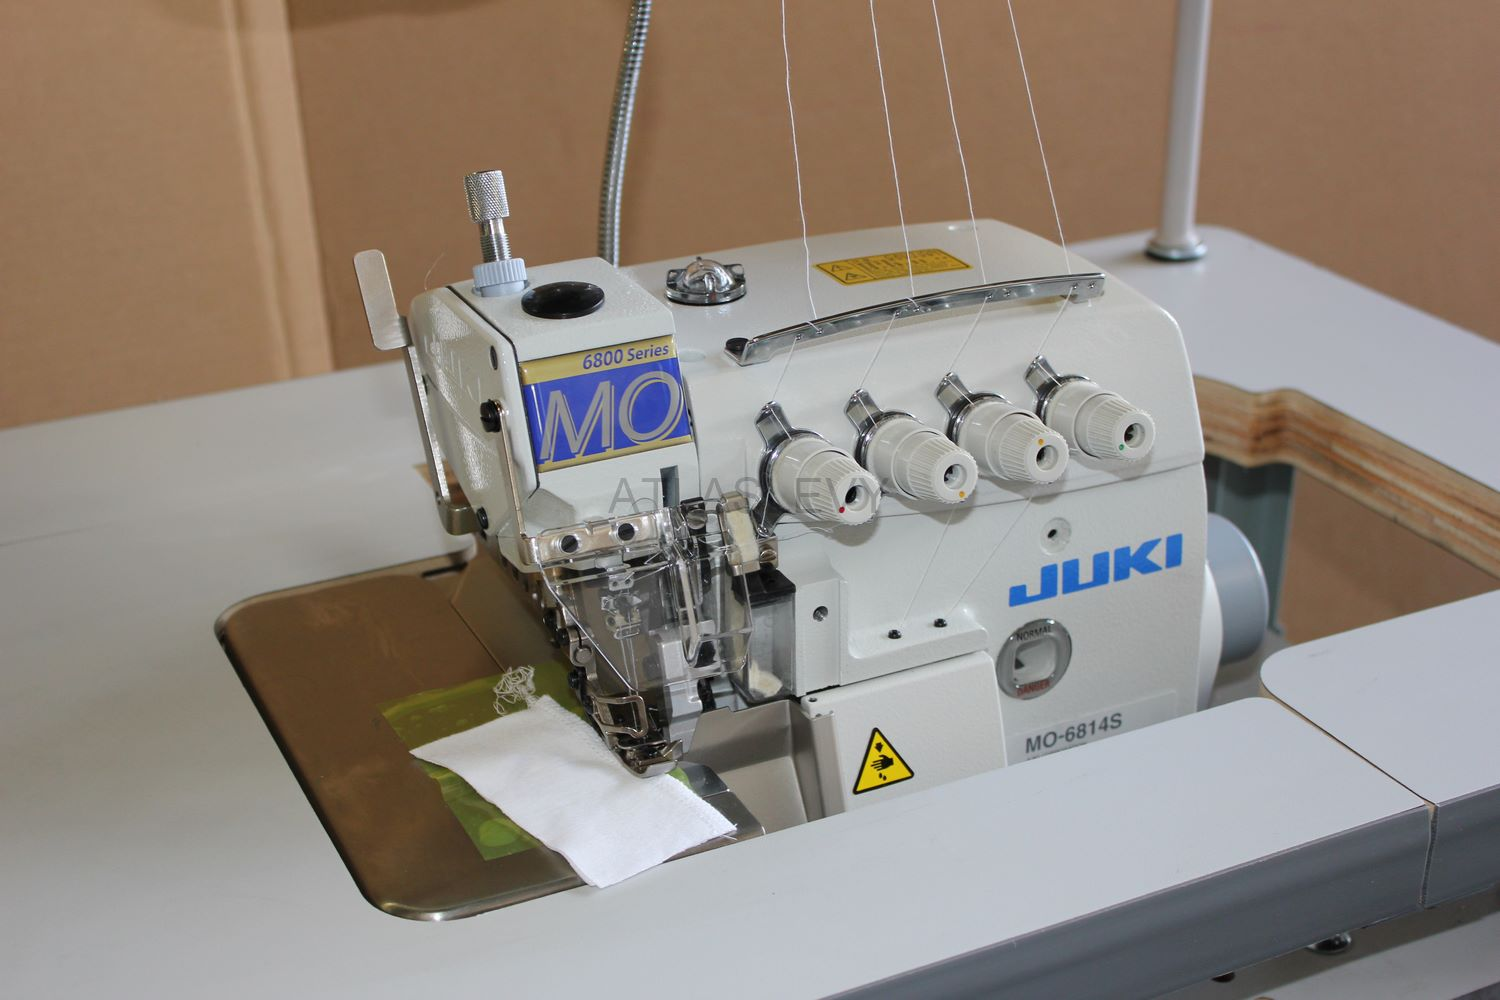 Juki mo 6814s high speed 4 thread overlock machine w for High speed servo motor